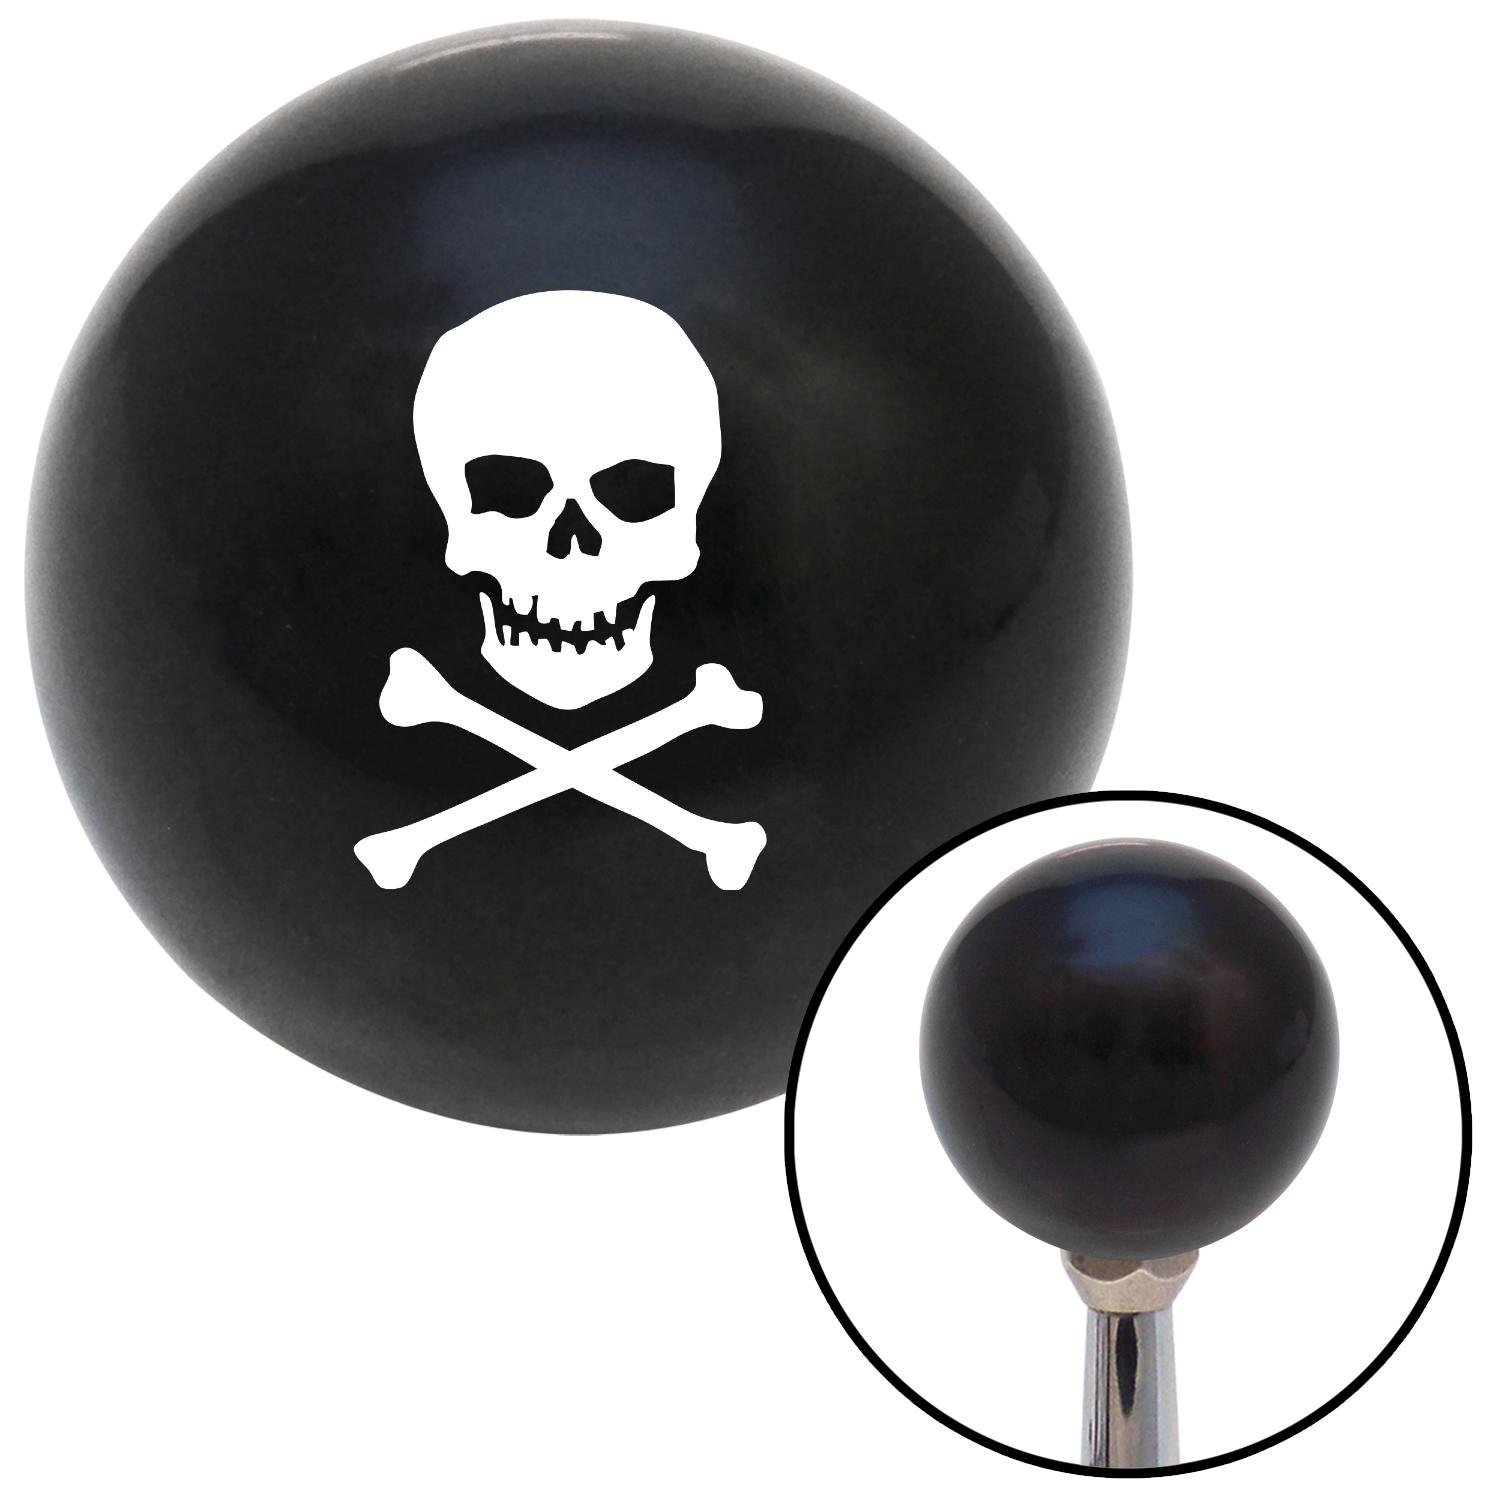 American Shifter 107999 Black Shift Knob with M16 x 1.5 Insert White Skull and Bones